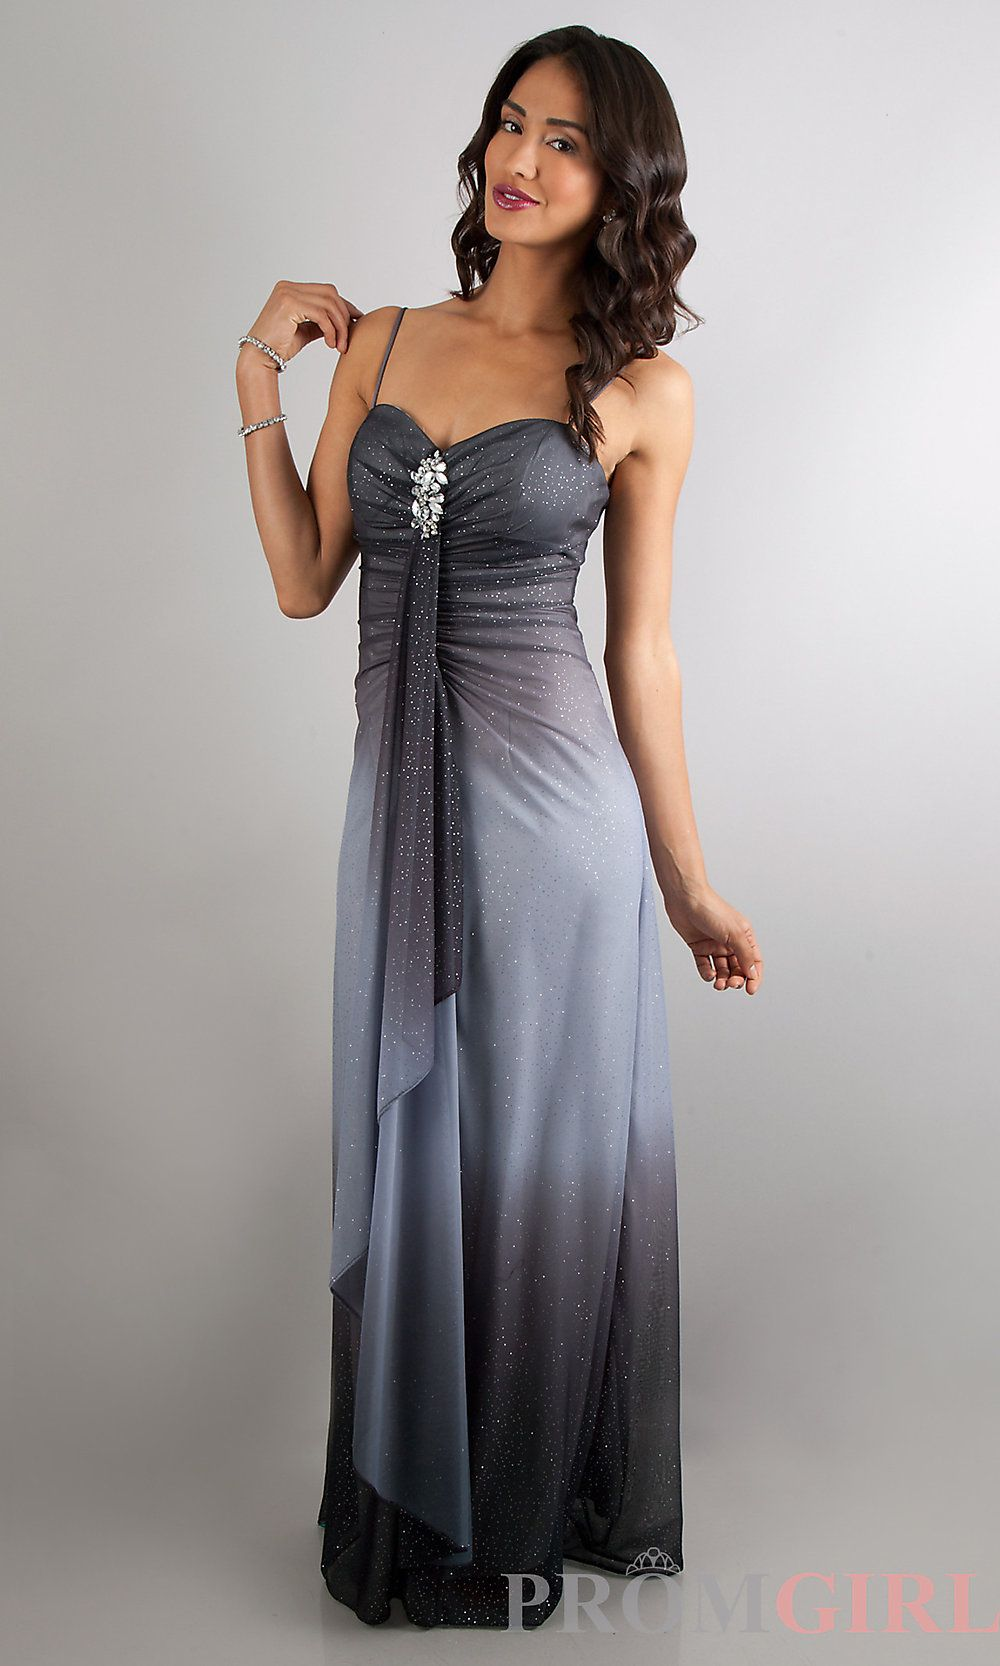 Prom dress ombre clothing